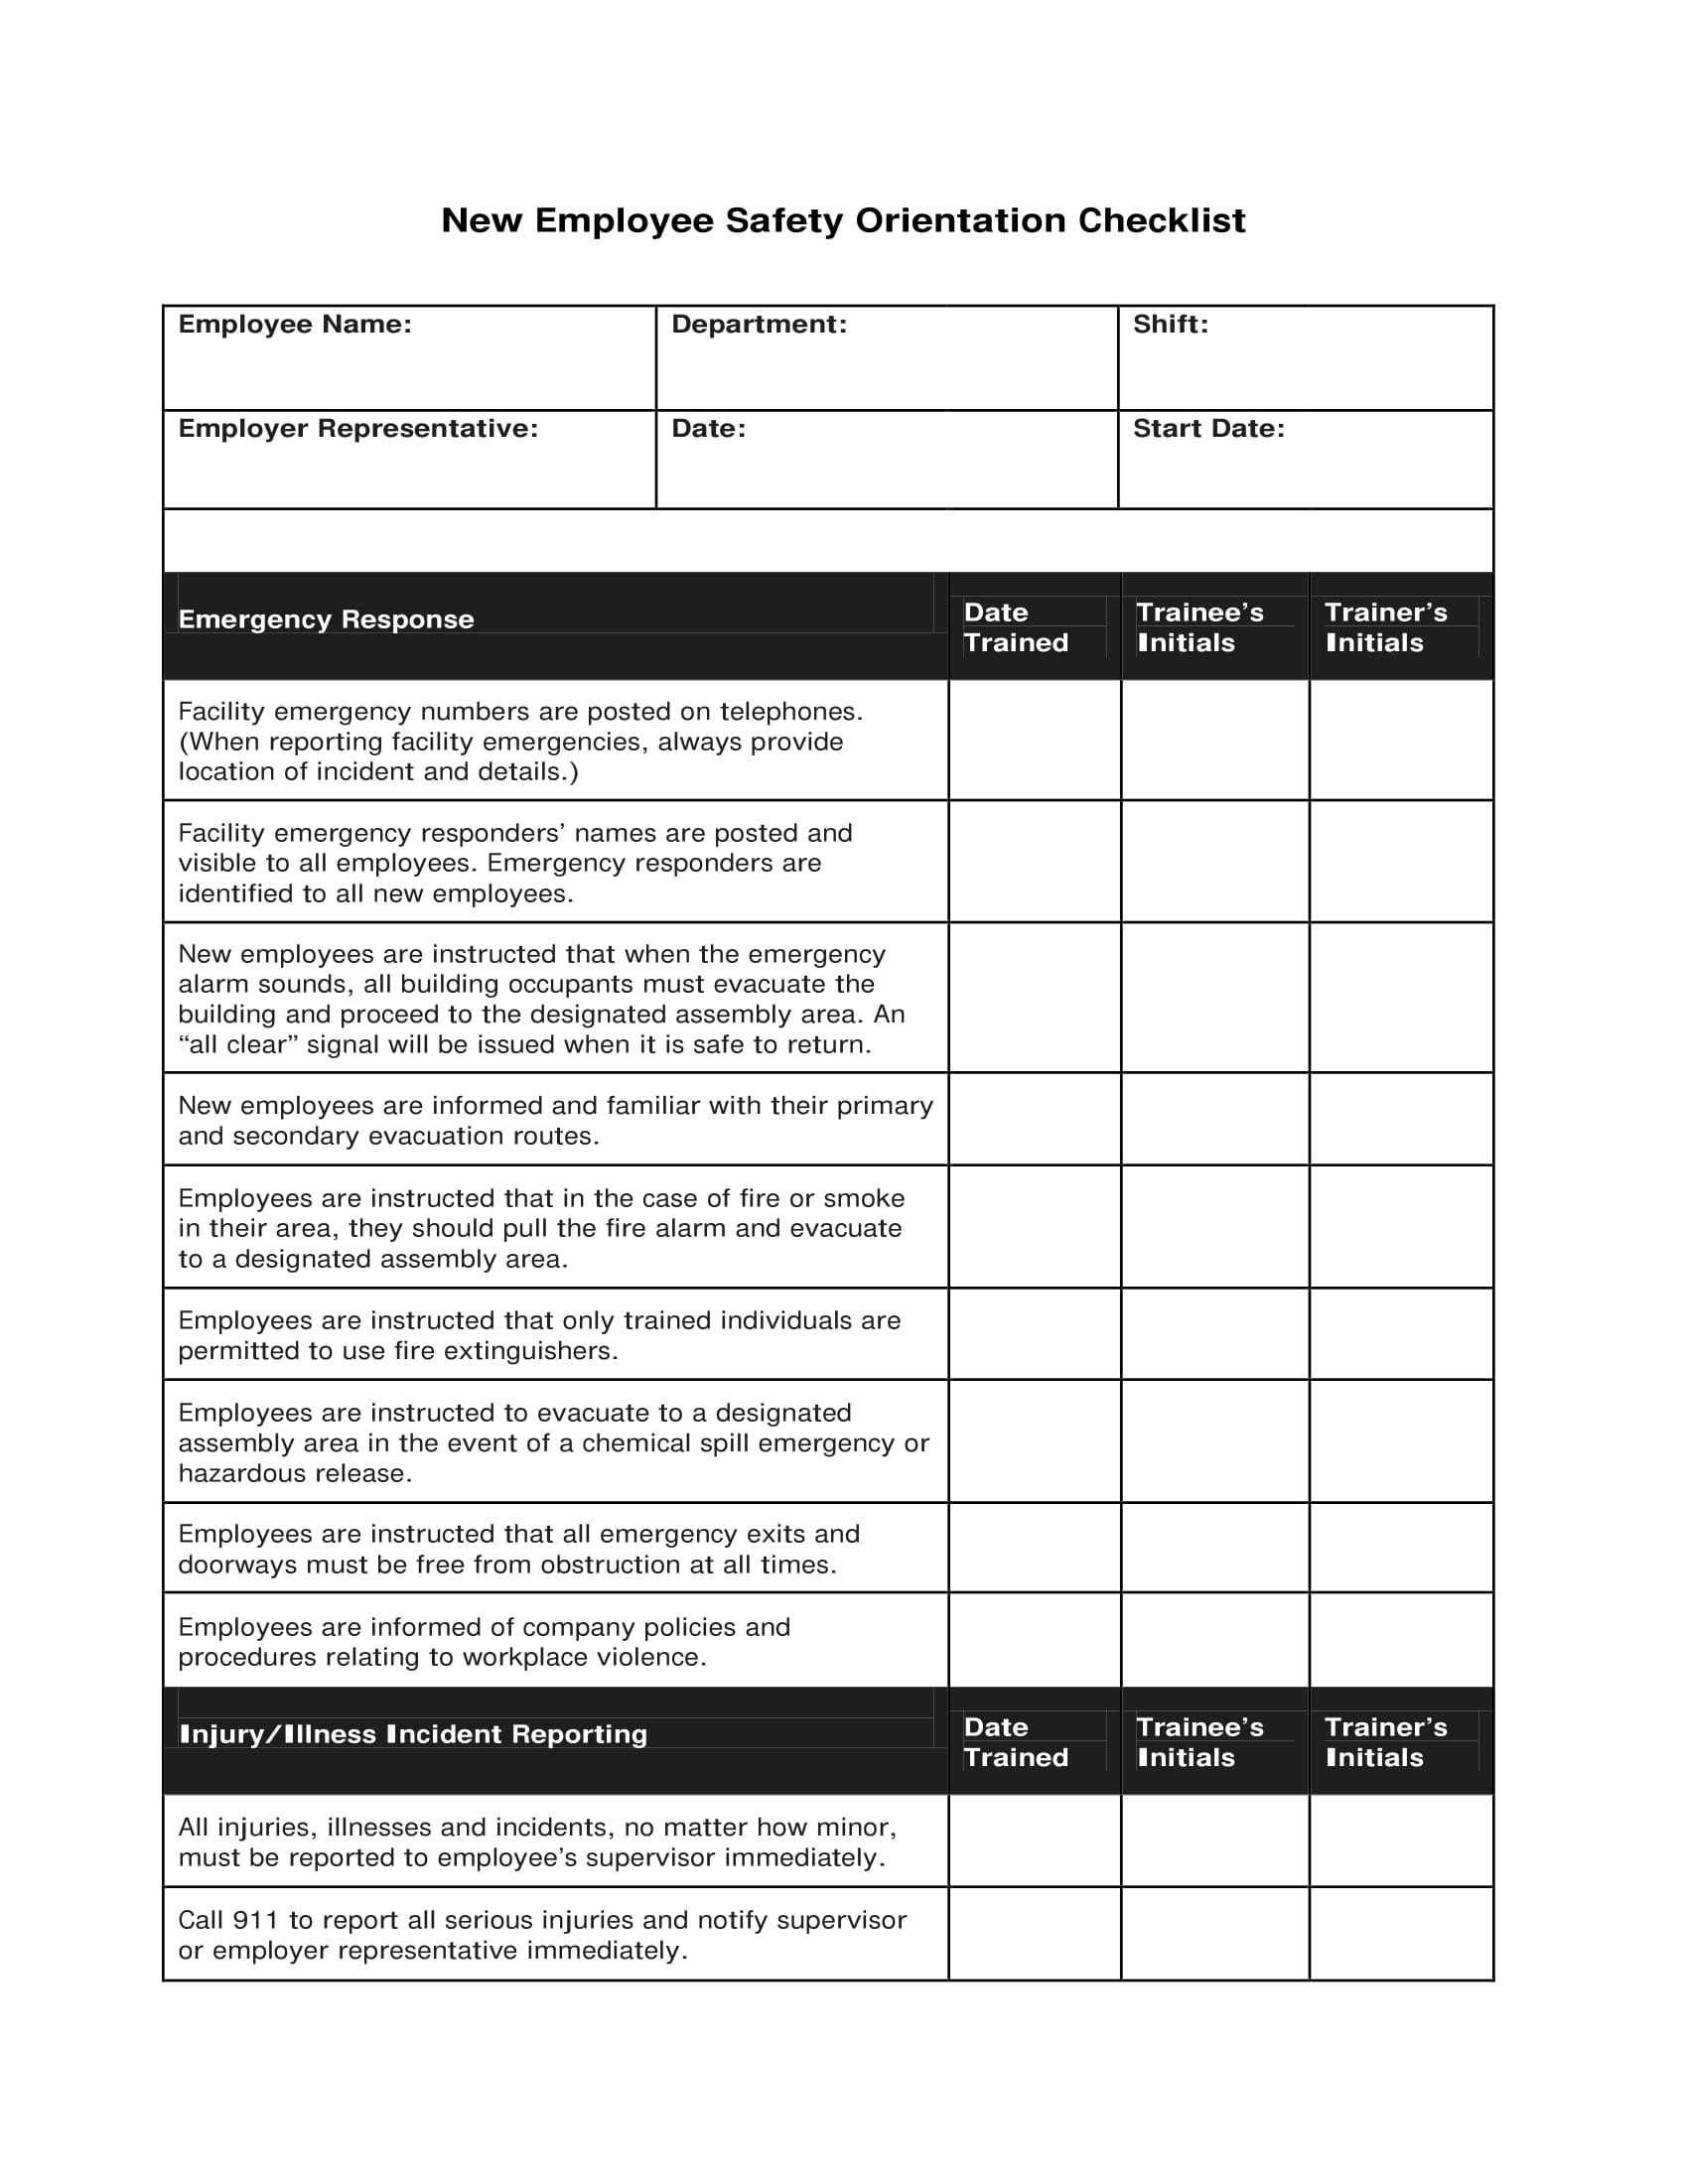 new employee safety orientation checklist